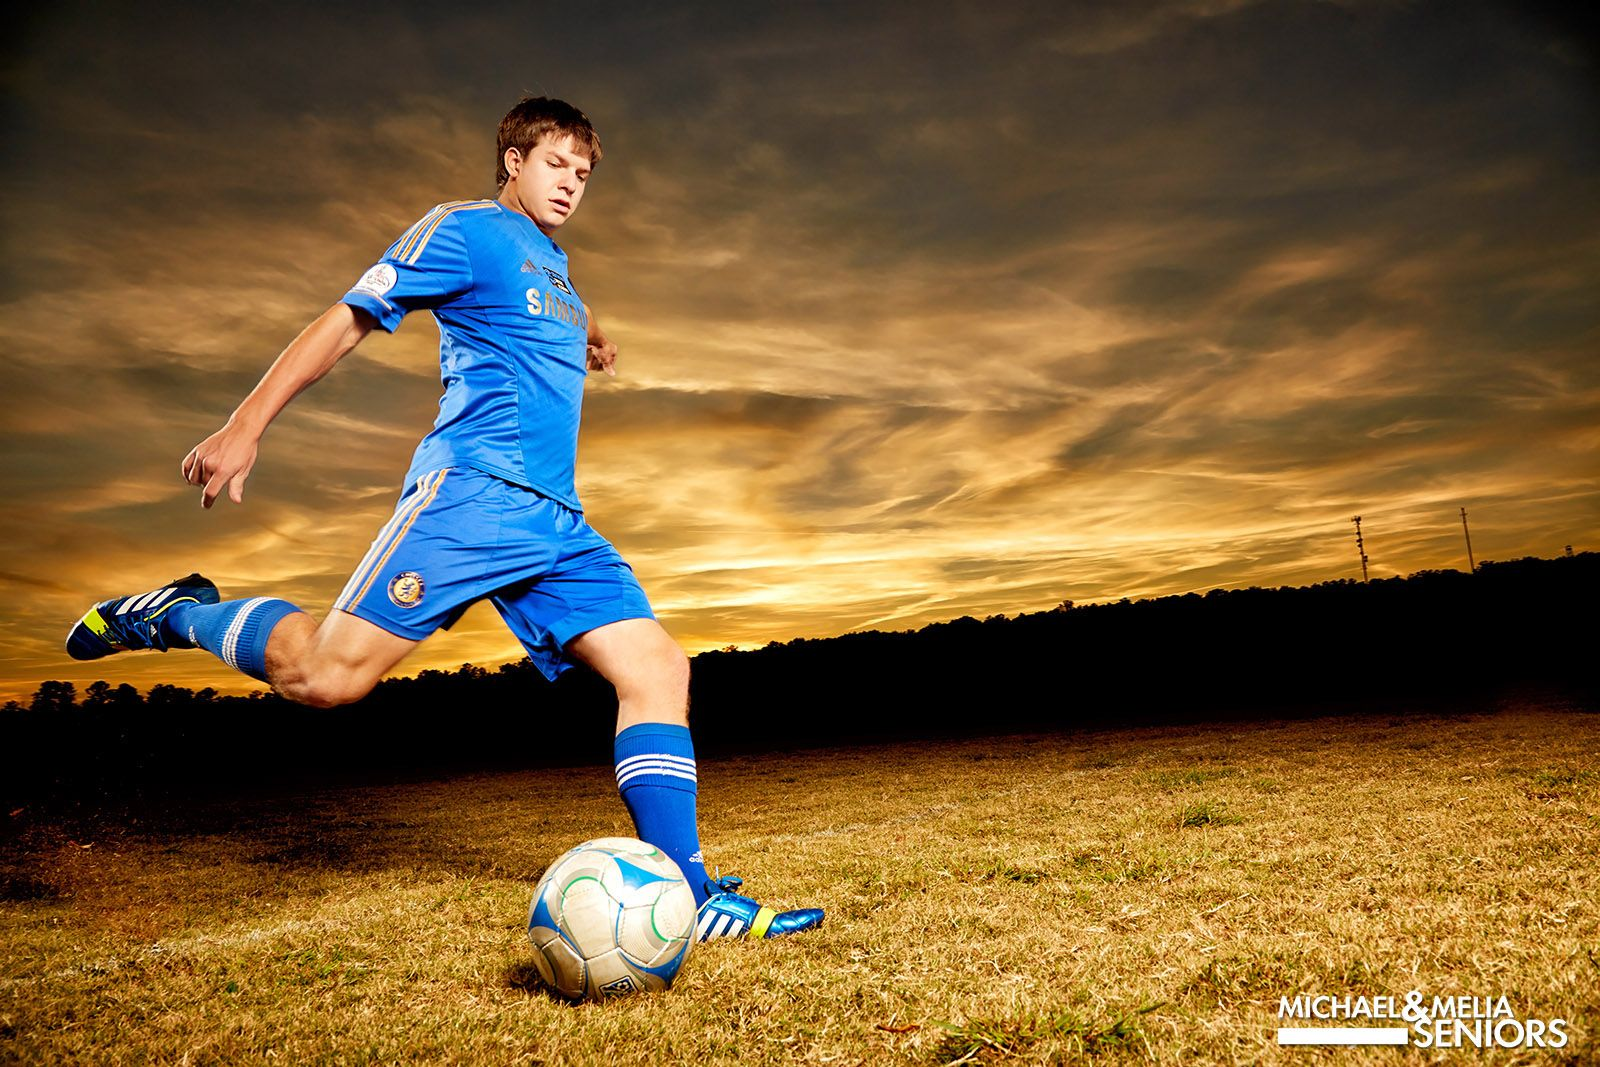 senior picture ideas for guys soccer bing images senior picture